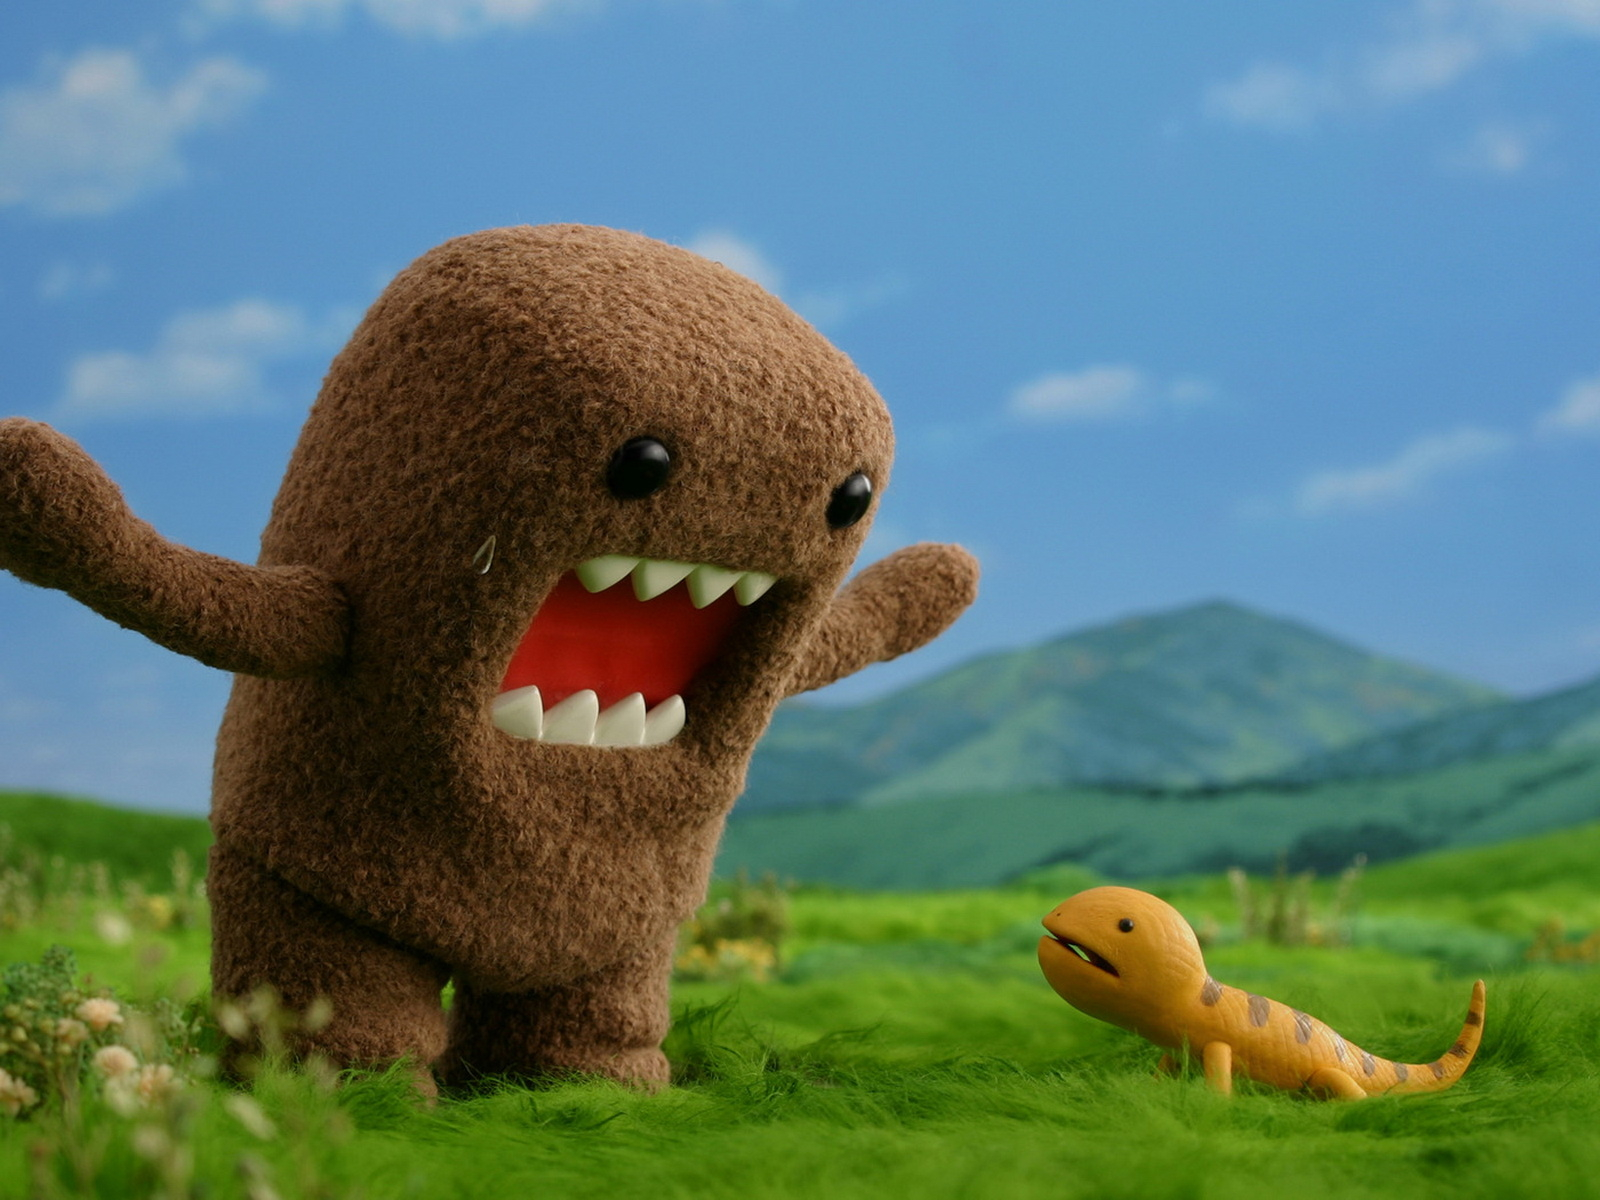 Archive_Miscellaneous_Domo-kun_and_lizard_026020_